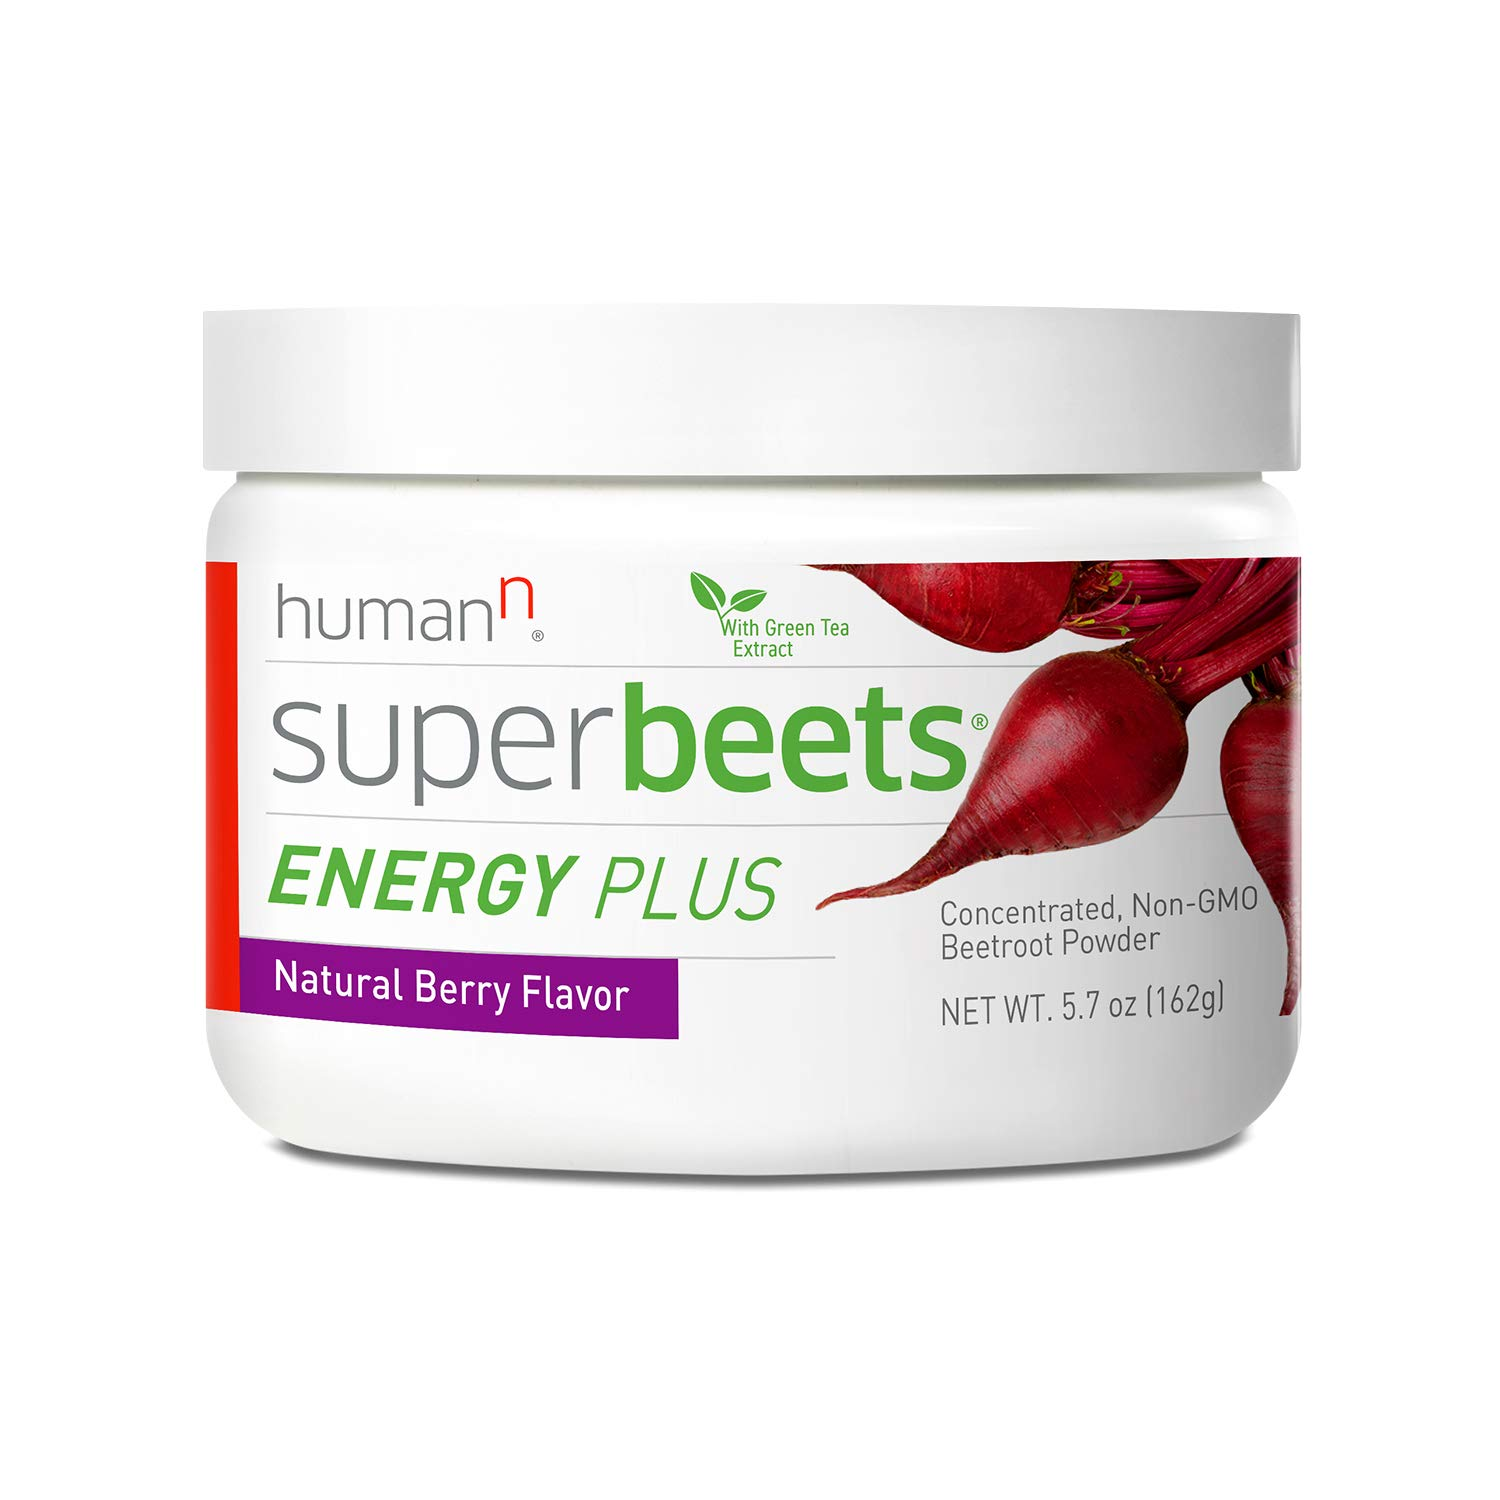 HumanN SuperBeets Energy Plus Superfood Concentrated Non-GMO Beetroot Supplement with Green Tea Extract (Natural Berry Flavor, 5.7-Ounce)